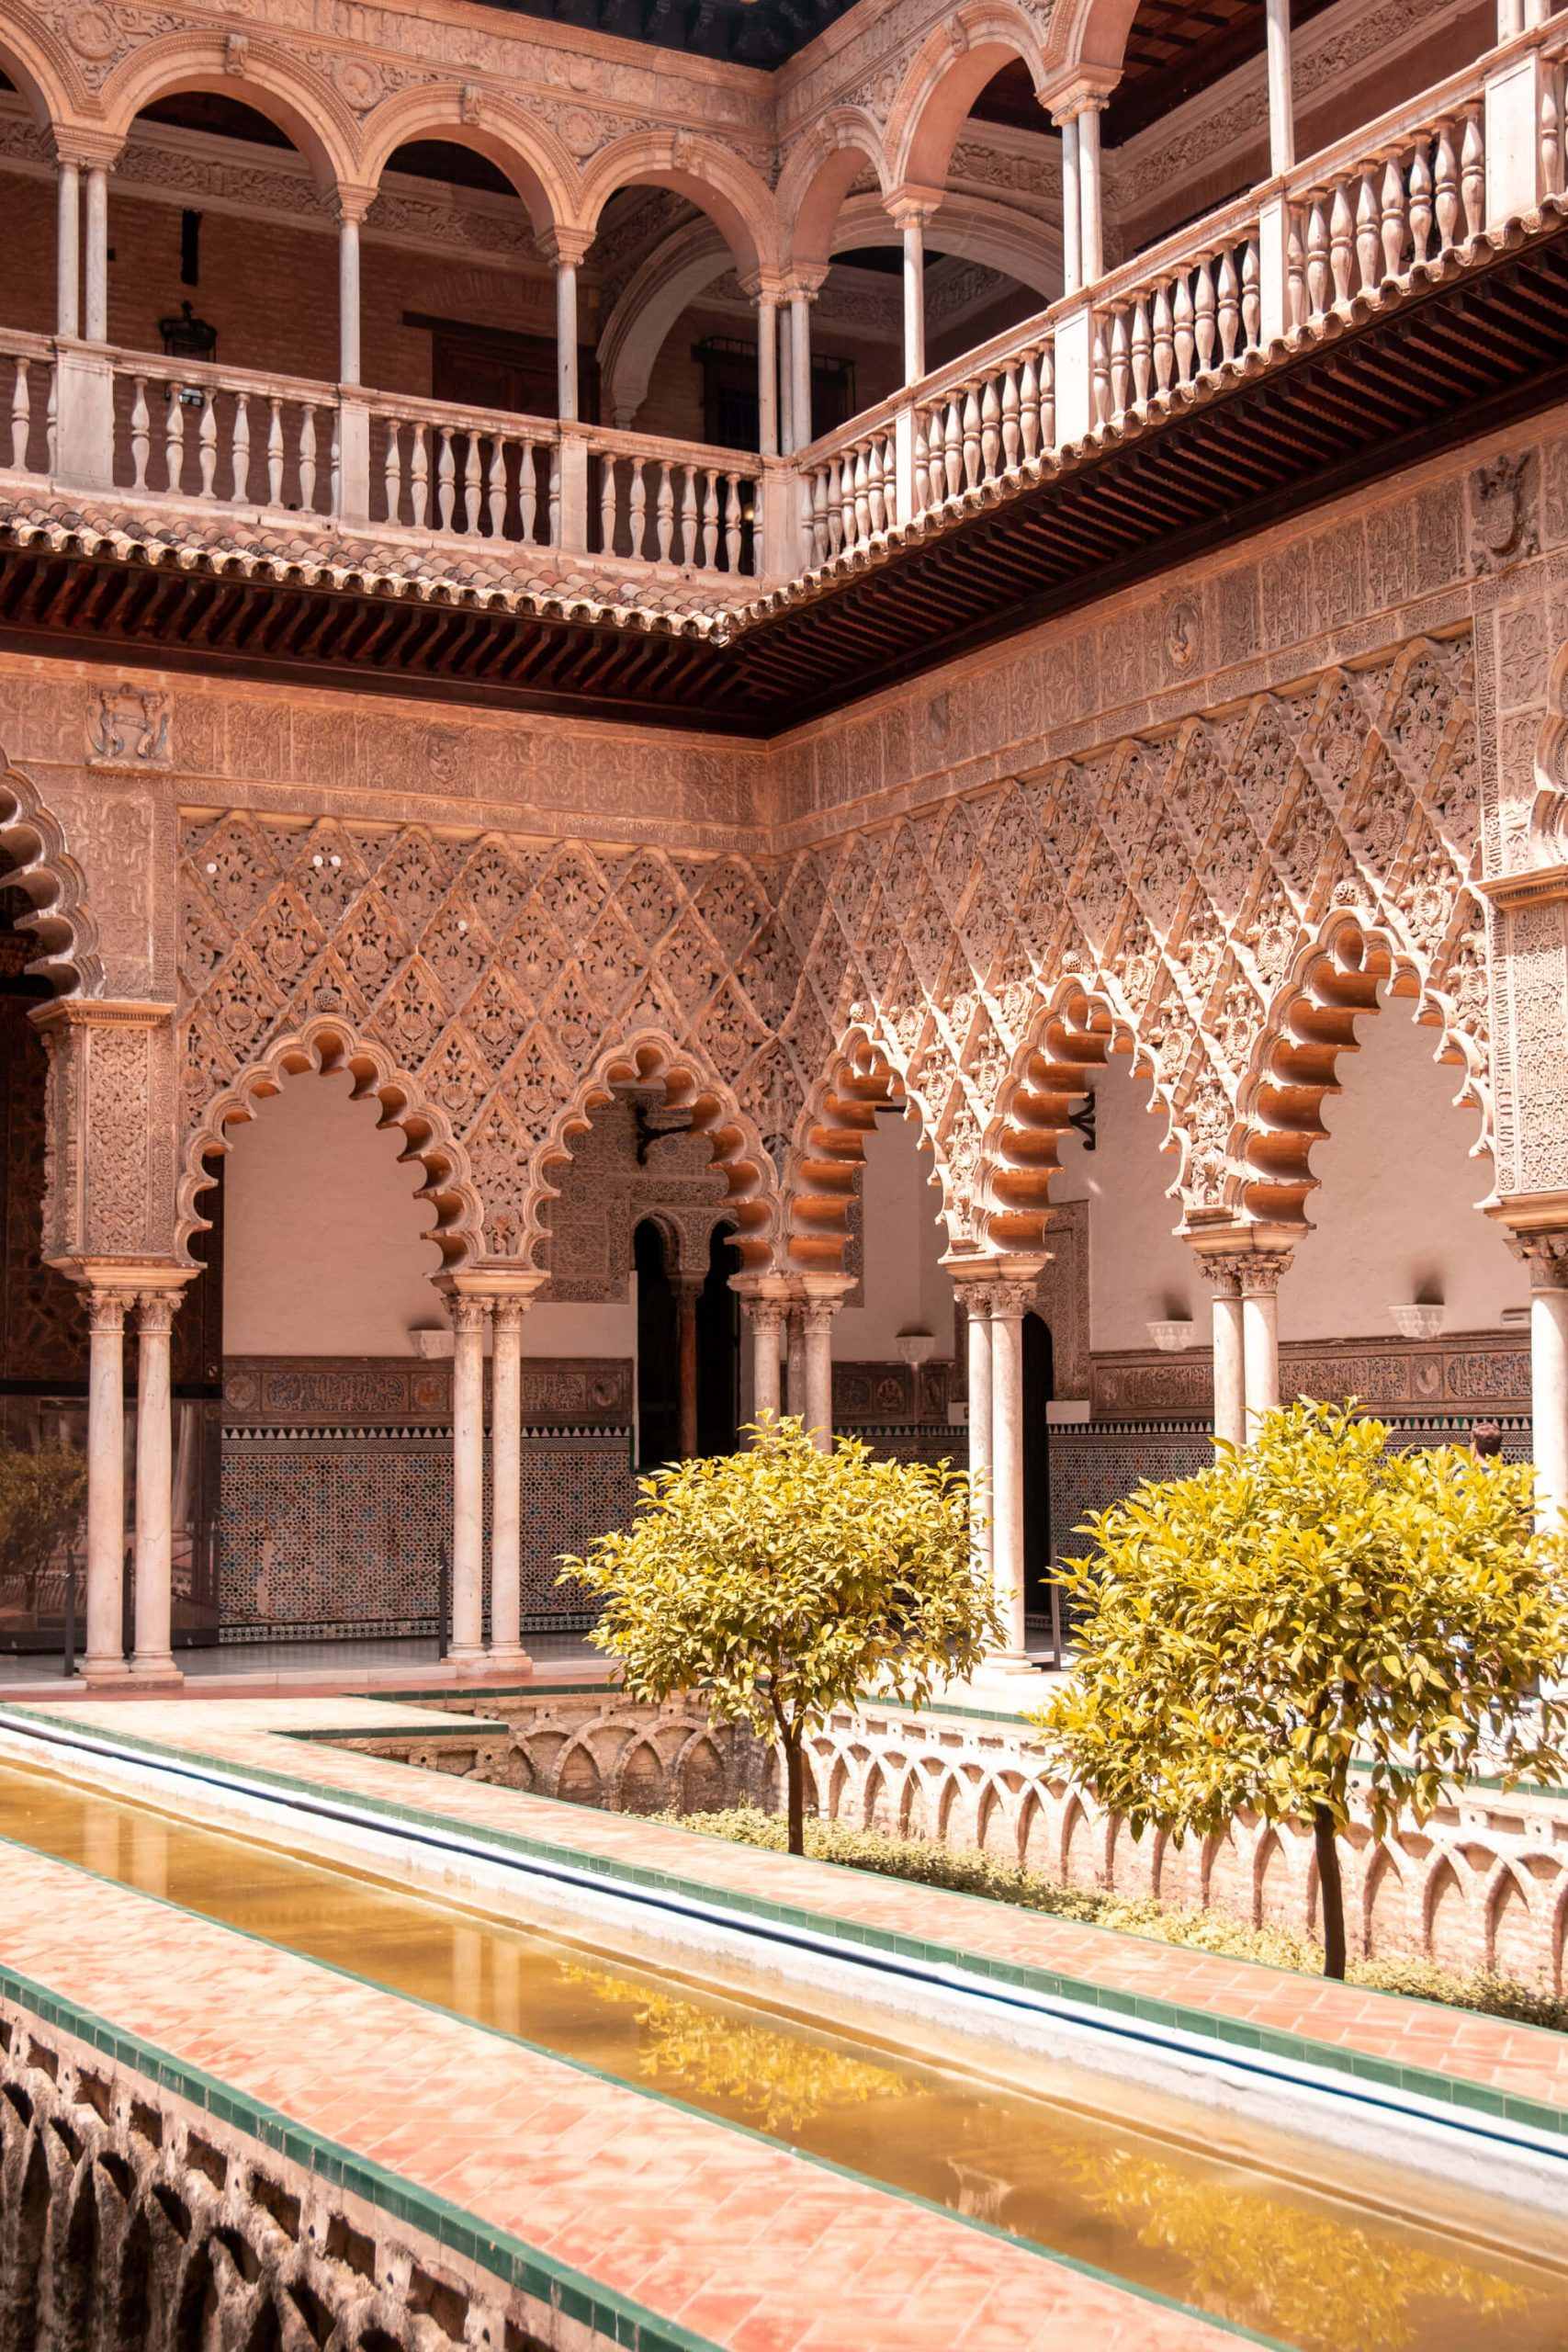 Pool in Alcazar